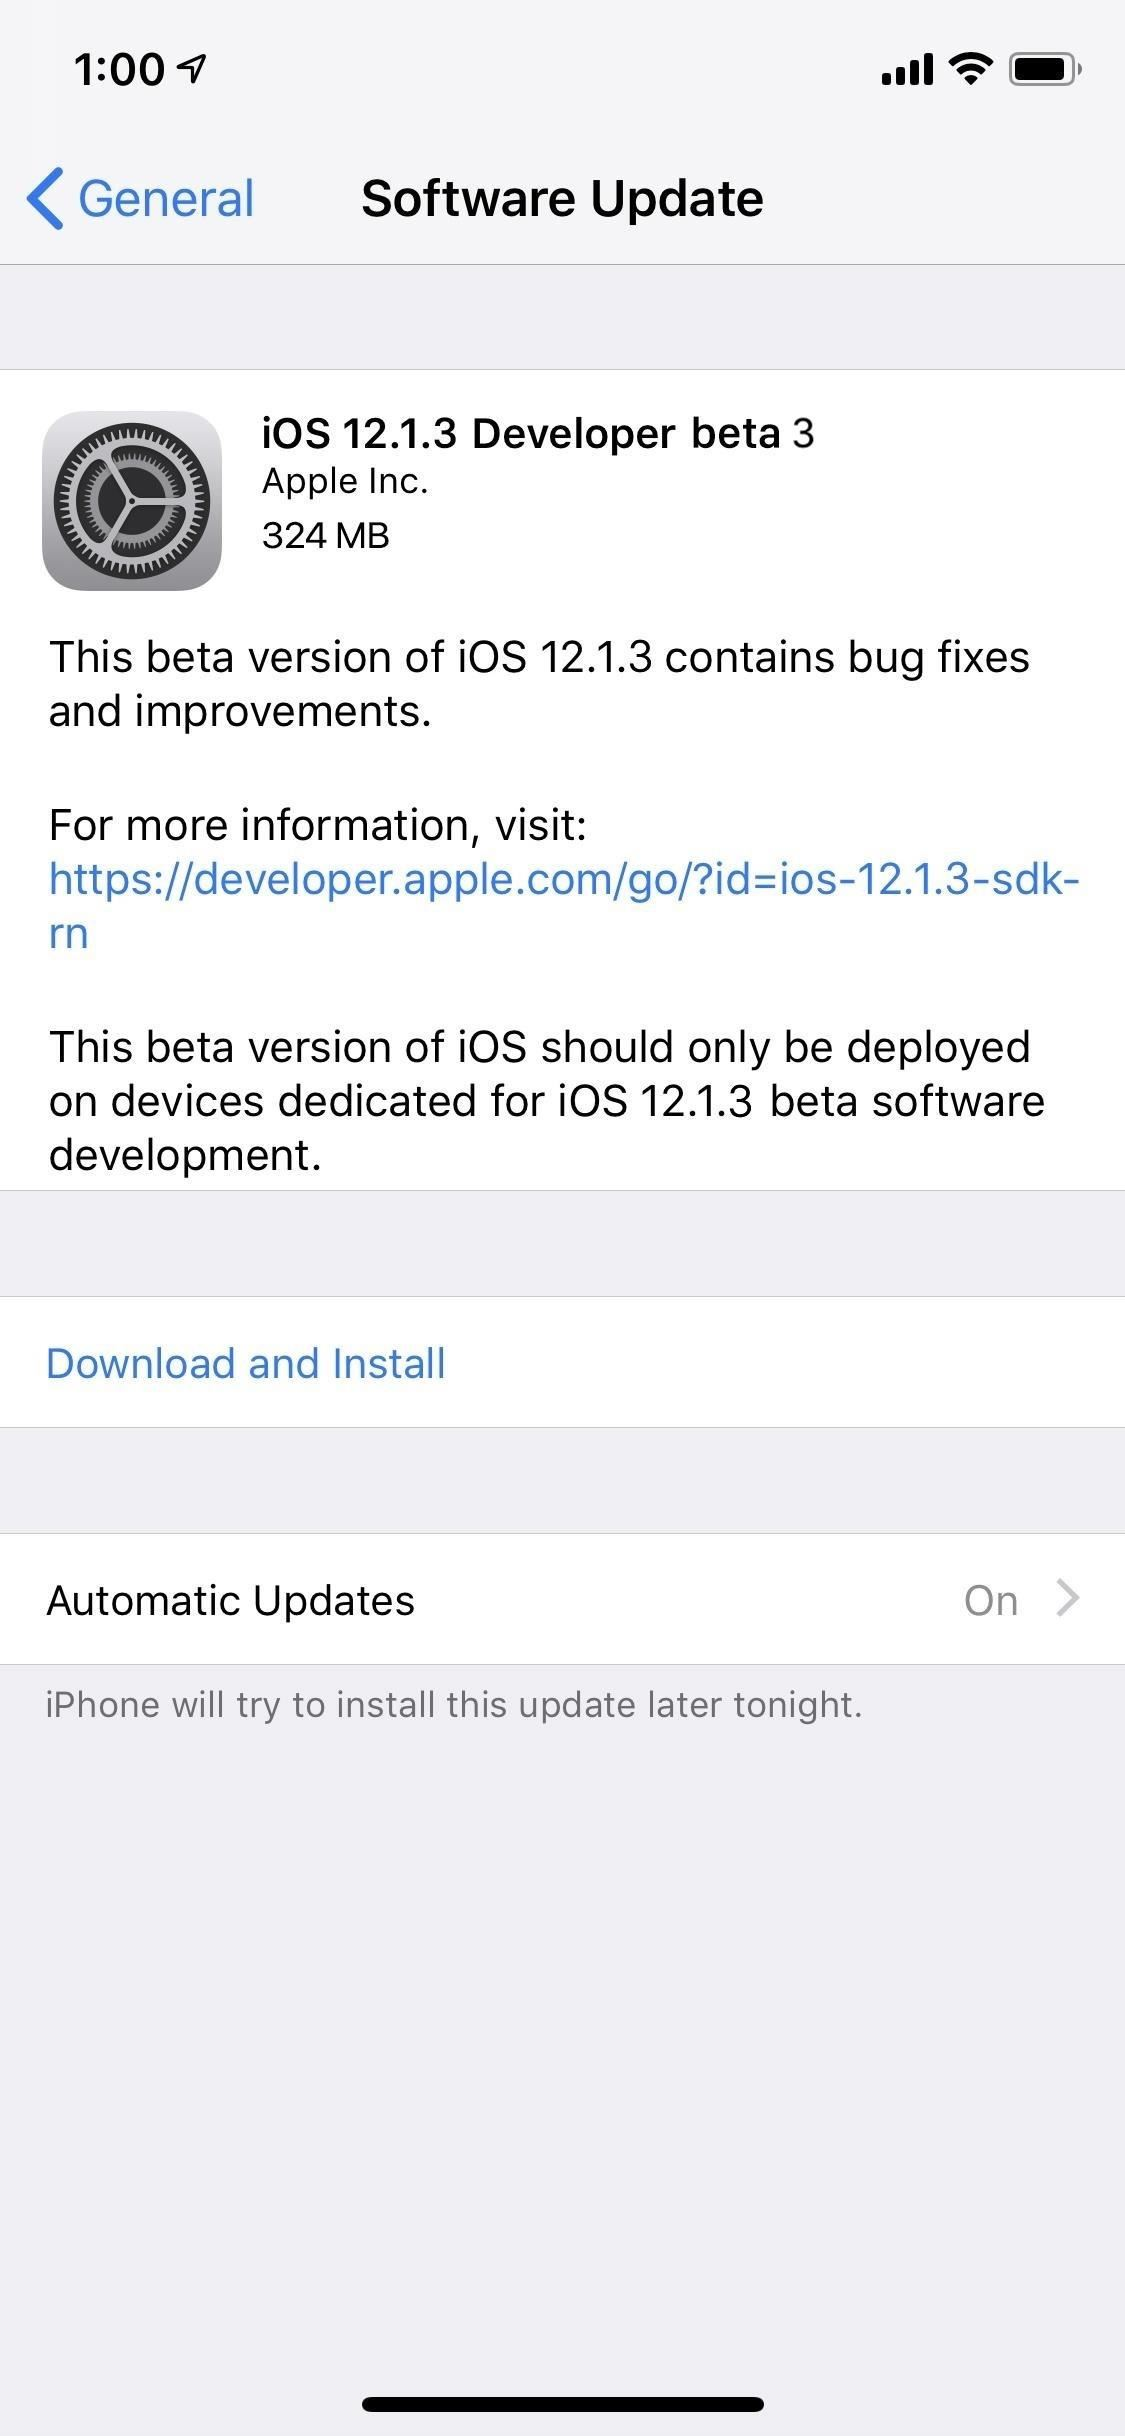 Apple Released iOS 12.1.3 Developer Beta 3 — See What's New